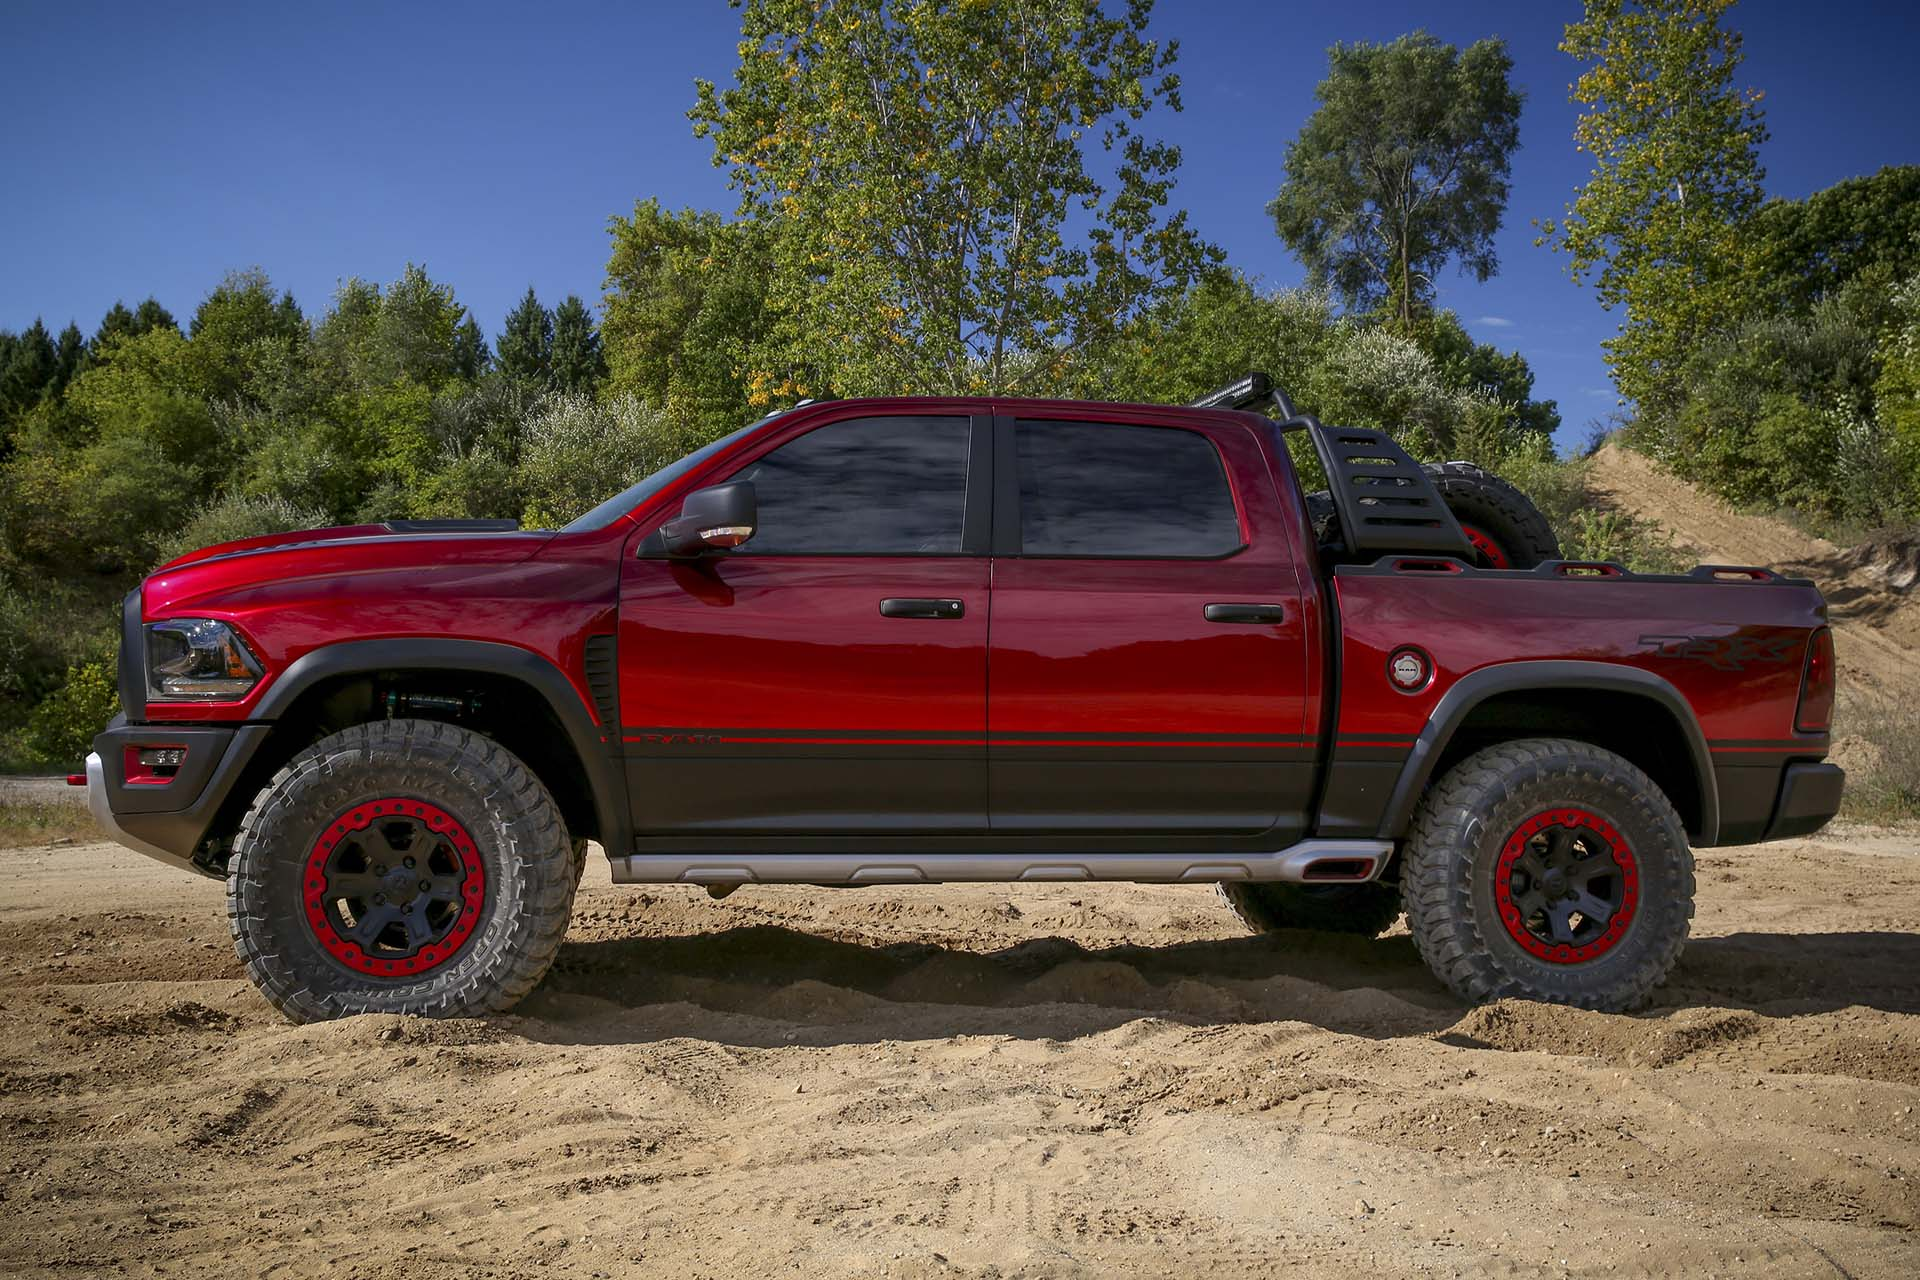 Mercedes 6x6 Price In Usa >> Ram just unveiled the Hellcat-powered Ram Rebel TRX concept